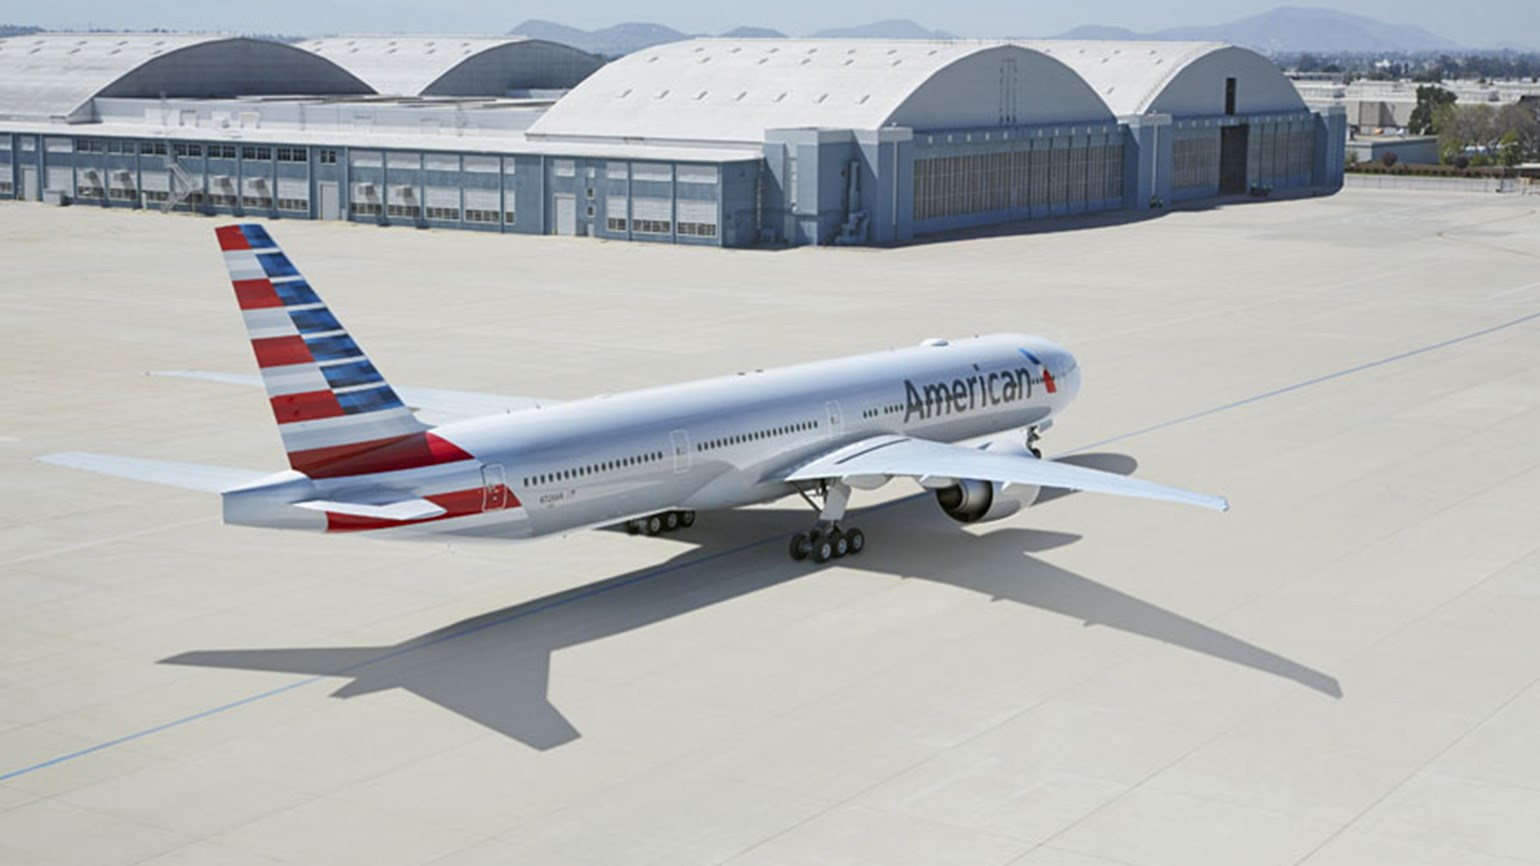 American Airlines Boeing 777 aircraft